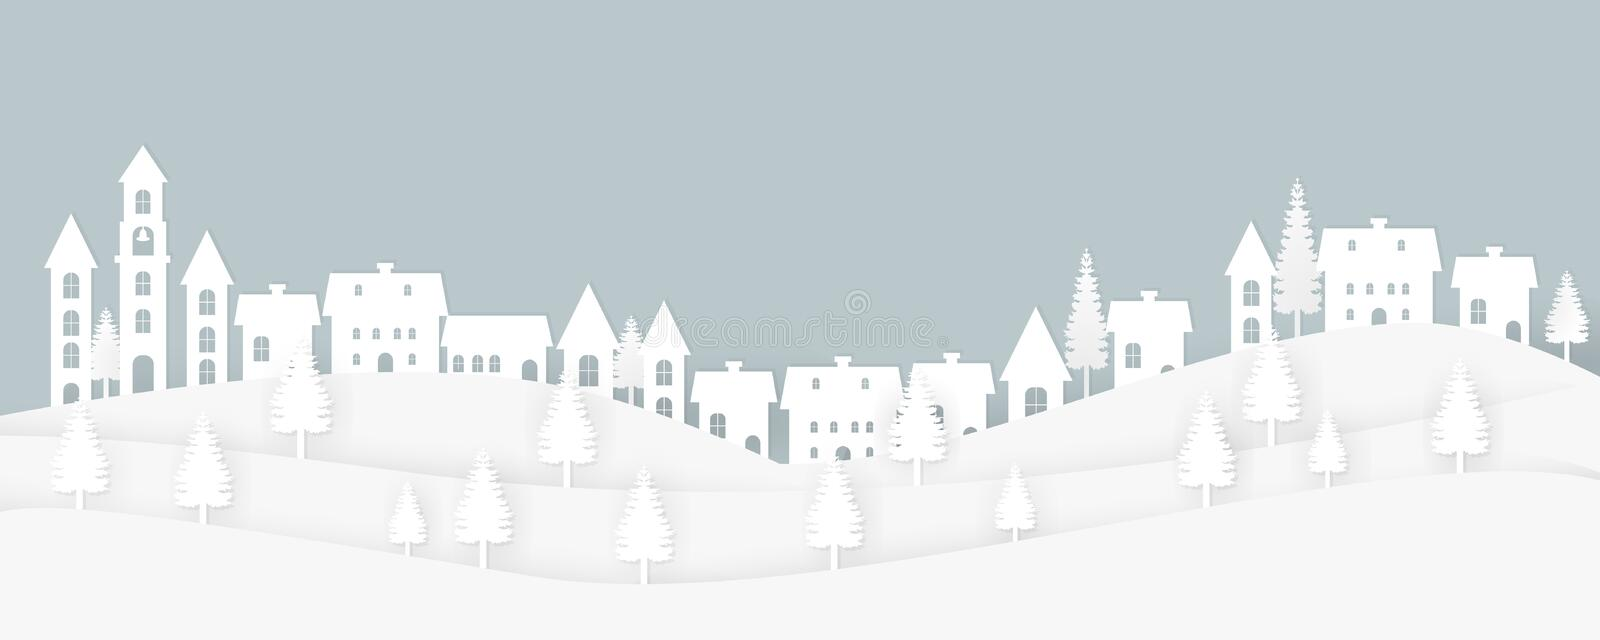 Landscape paper art style illustration with houses, and trees. stock photography